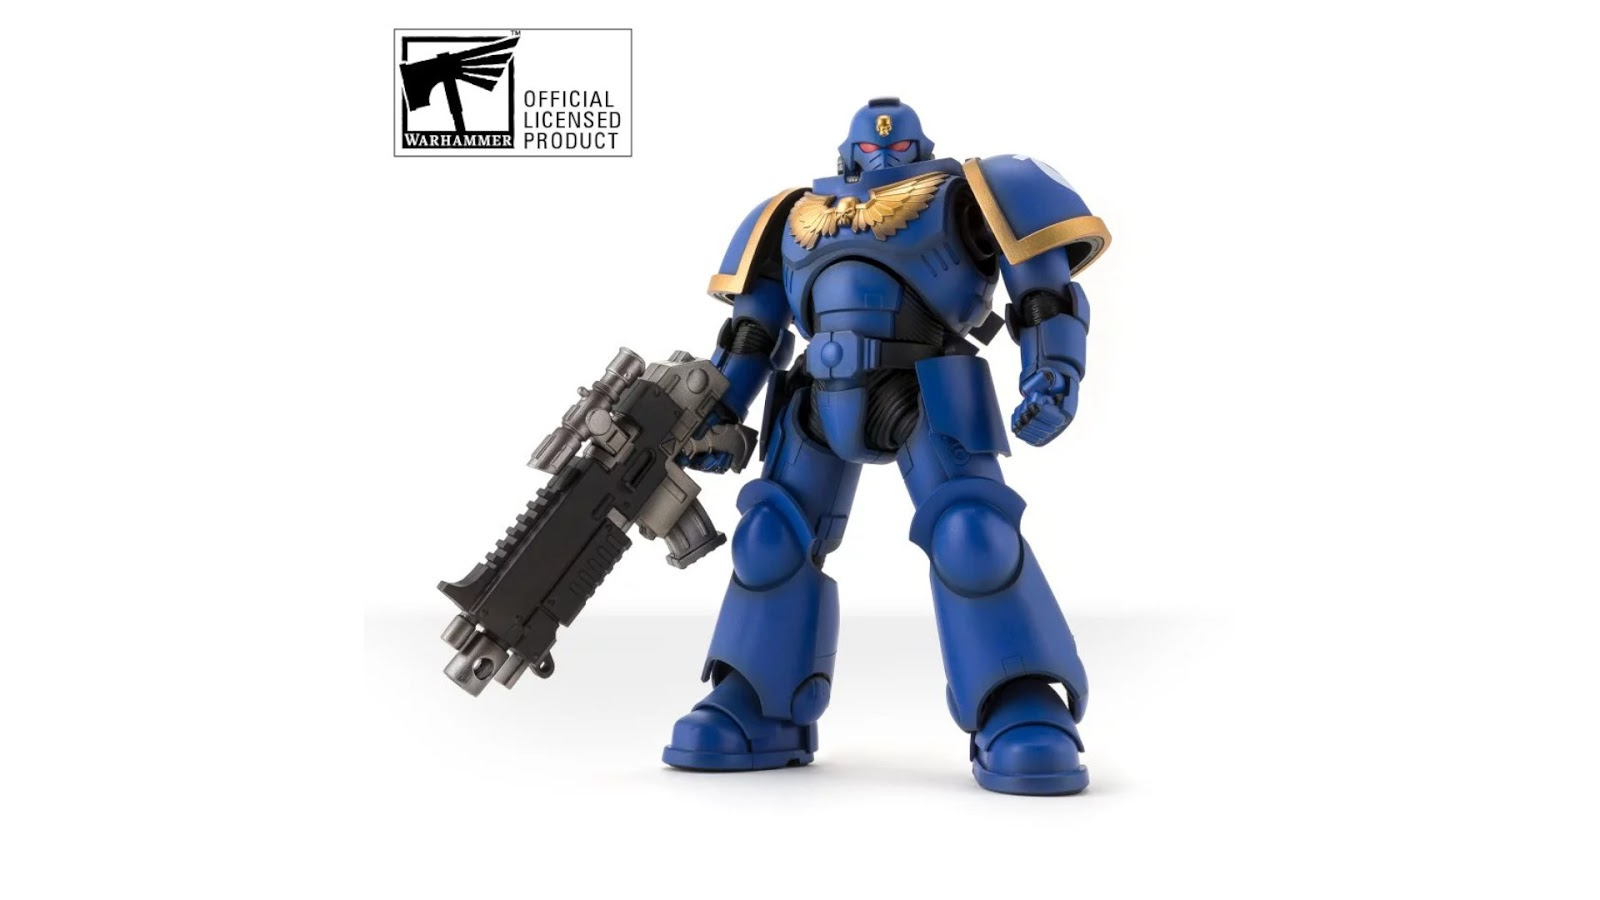 News Collider - Board Game News Games Workshop and Bandai Space Marine Action Figure